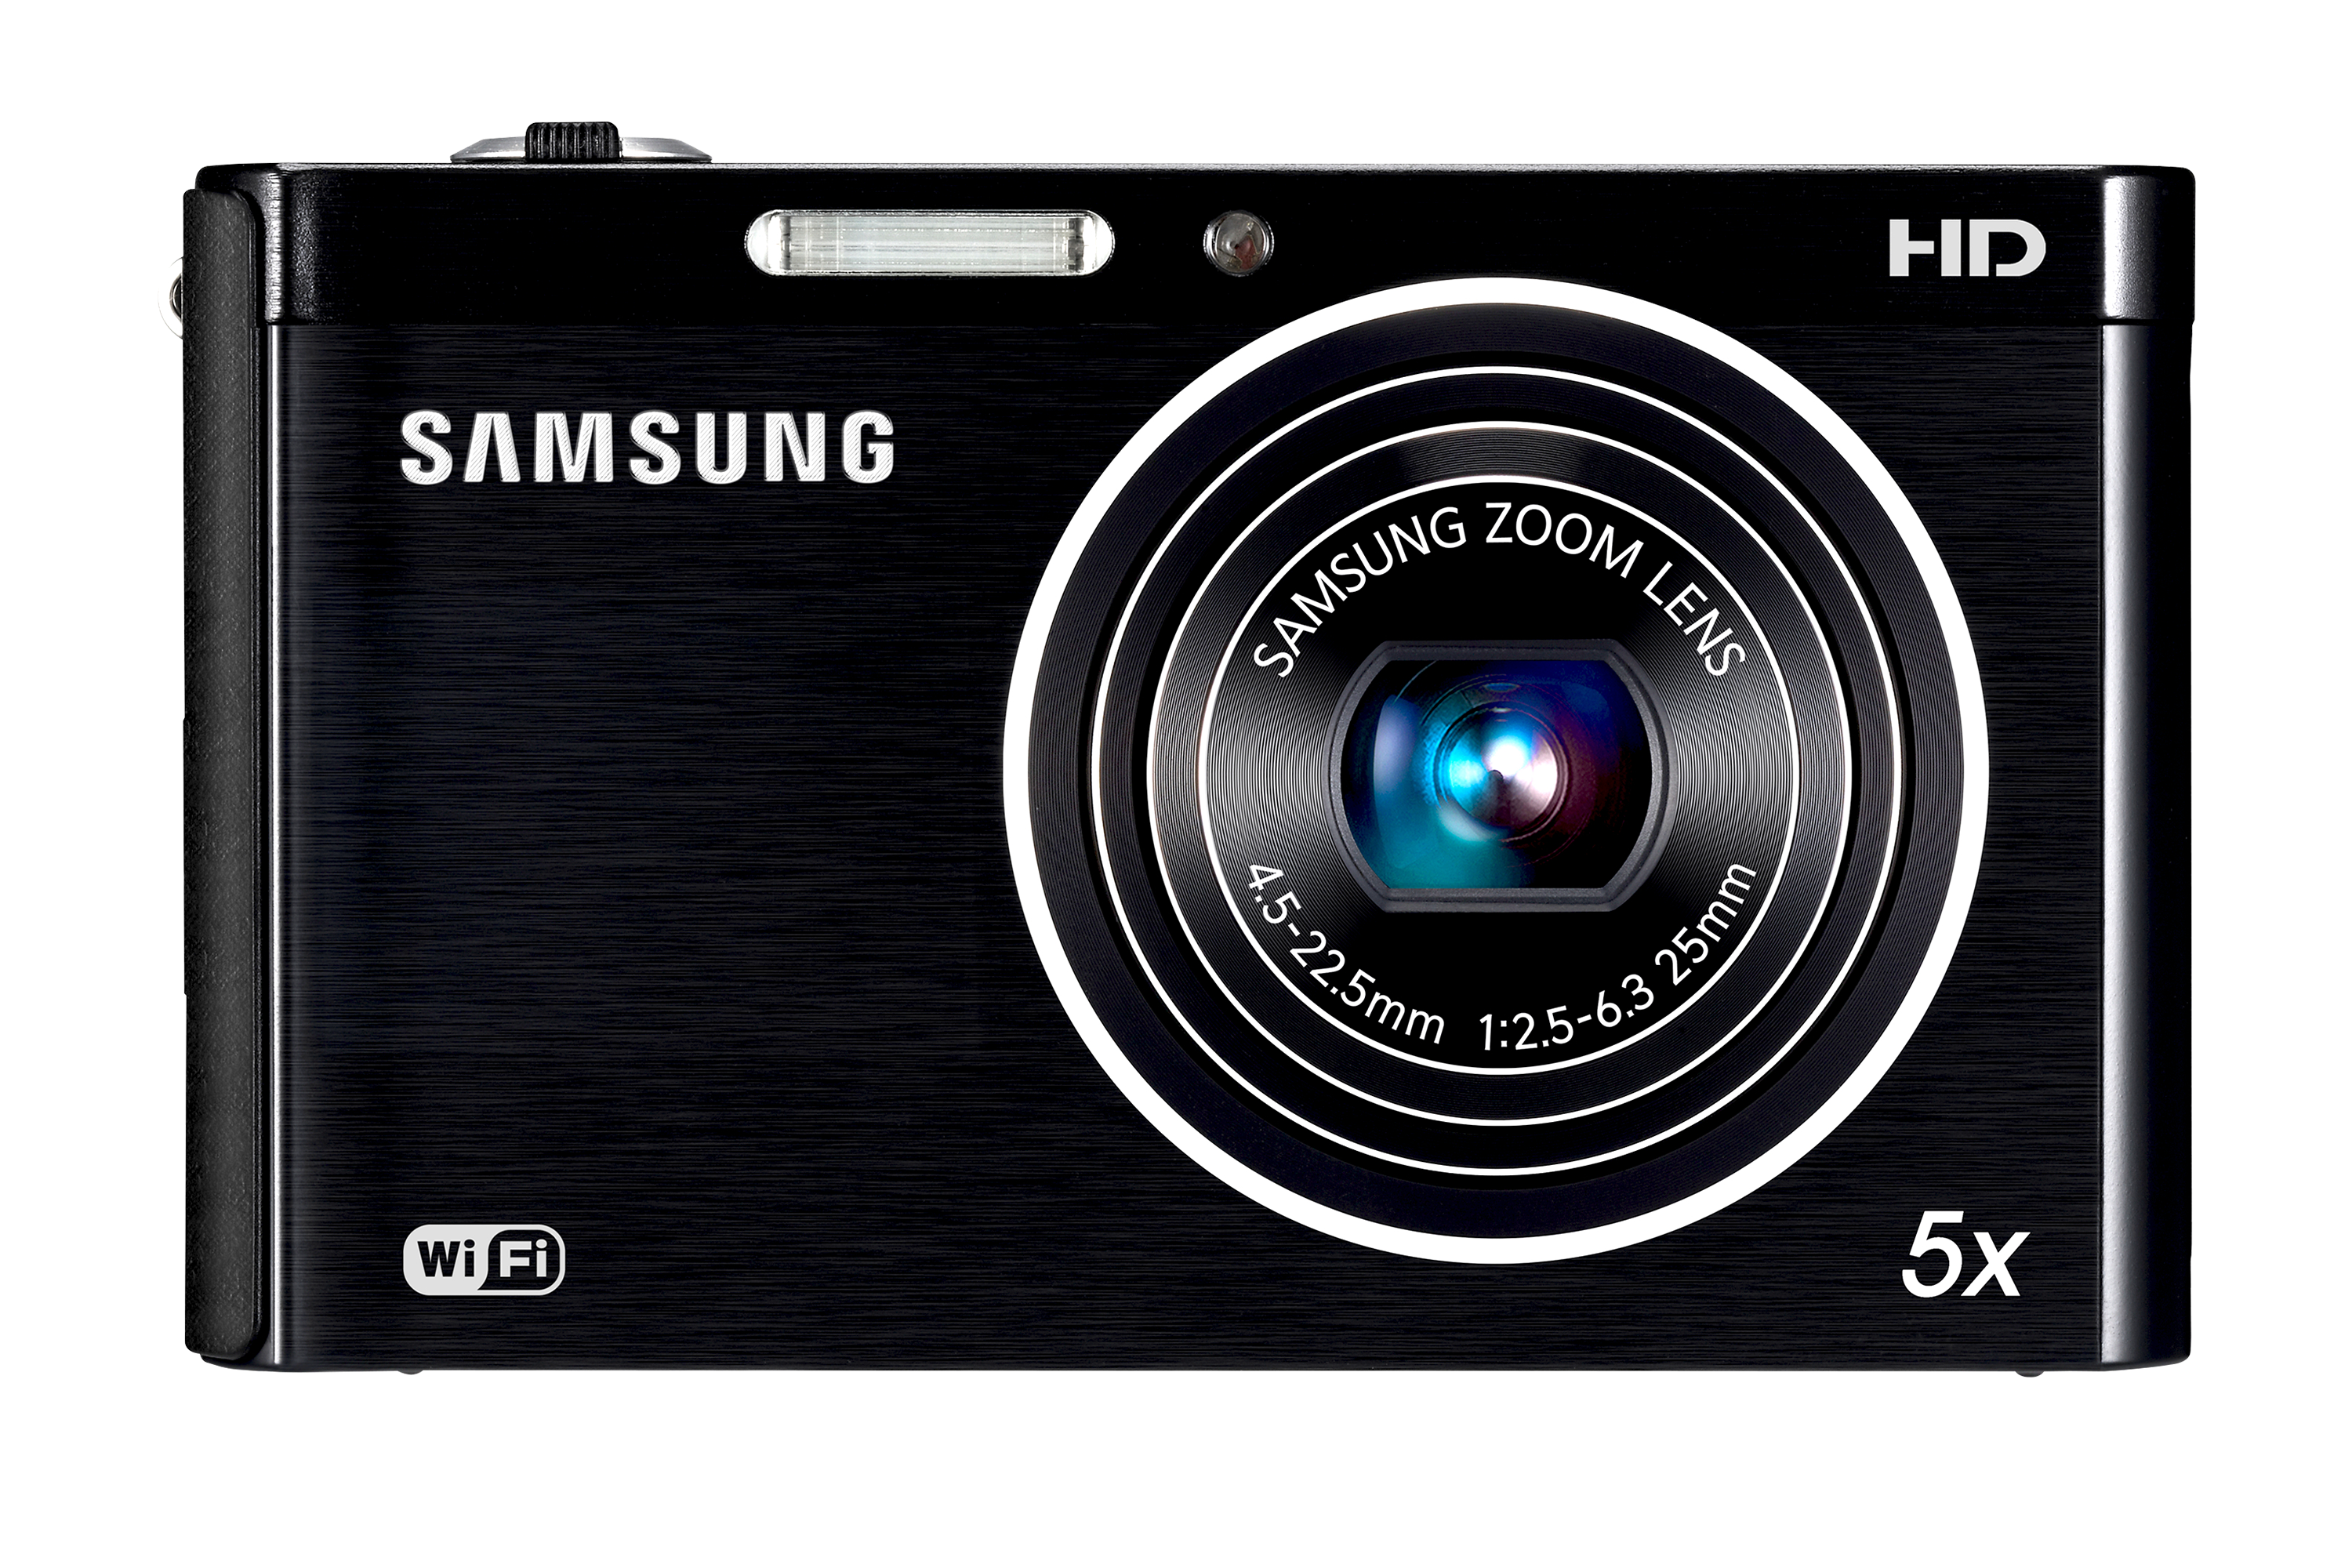 SAMSUNG DV300F Smart Camera DV300F